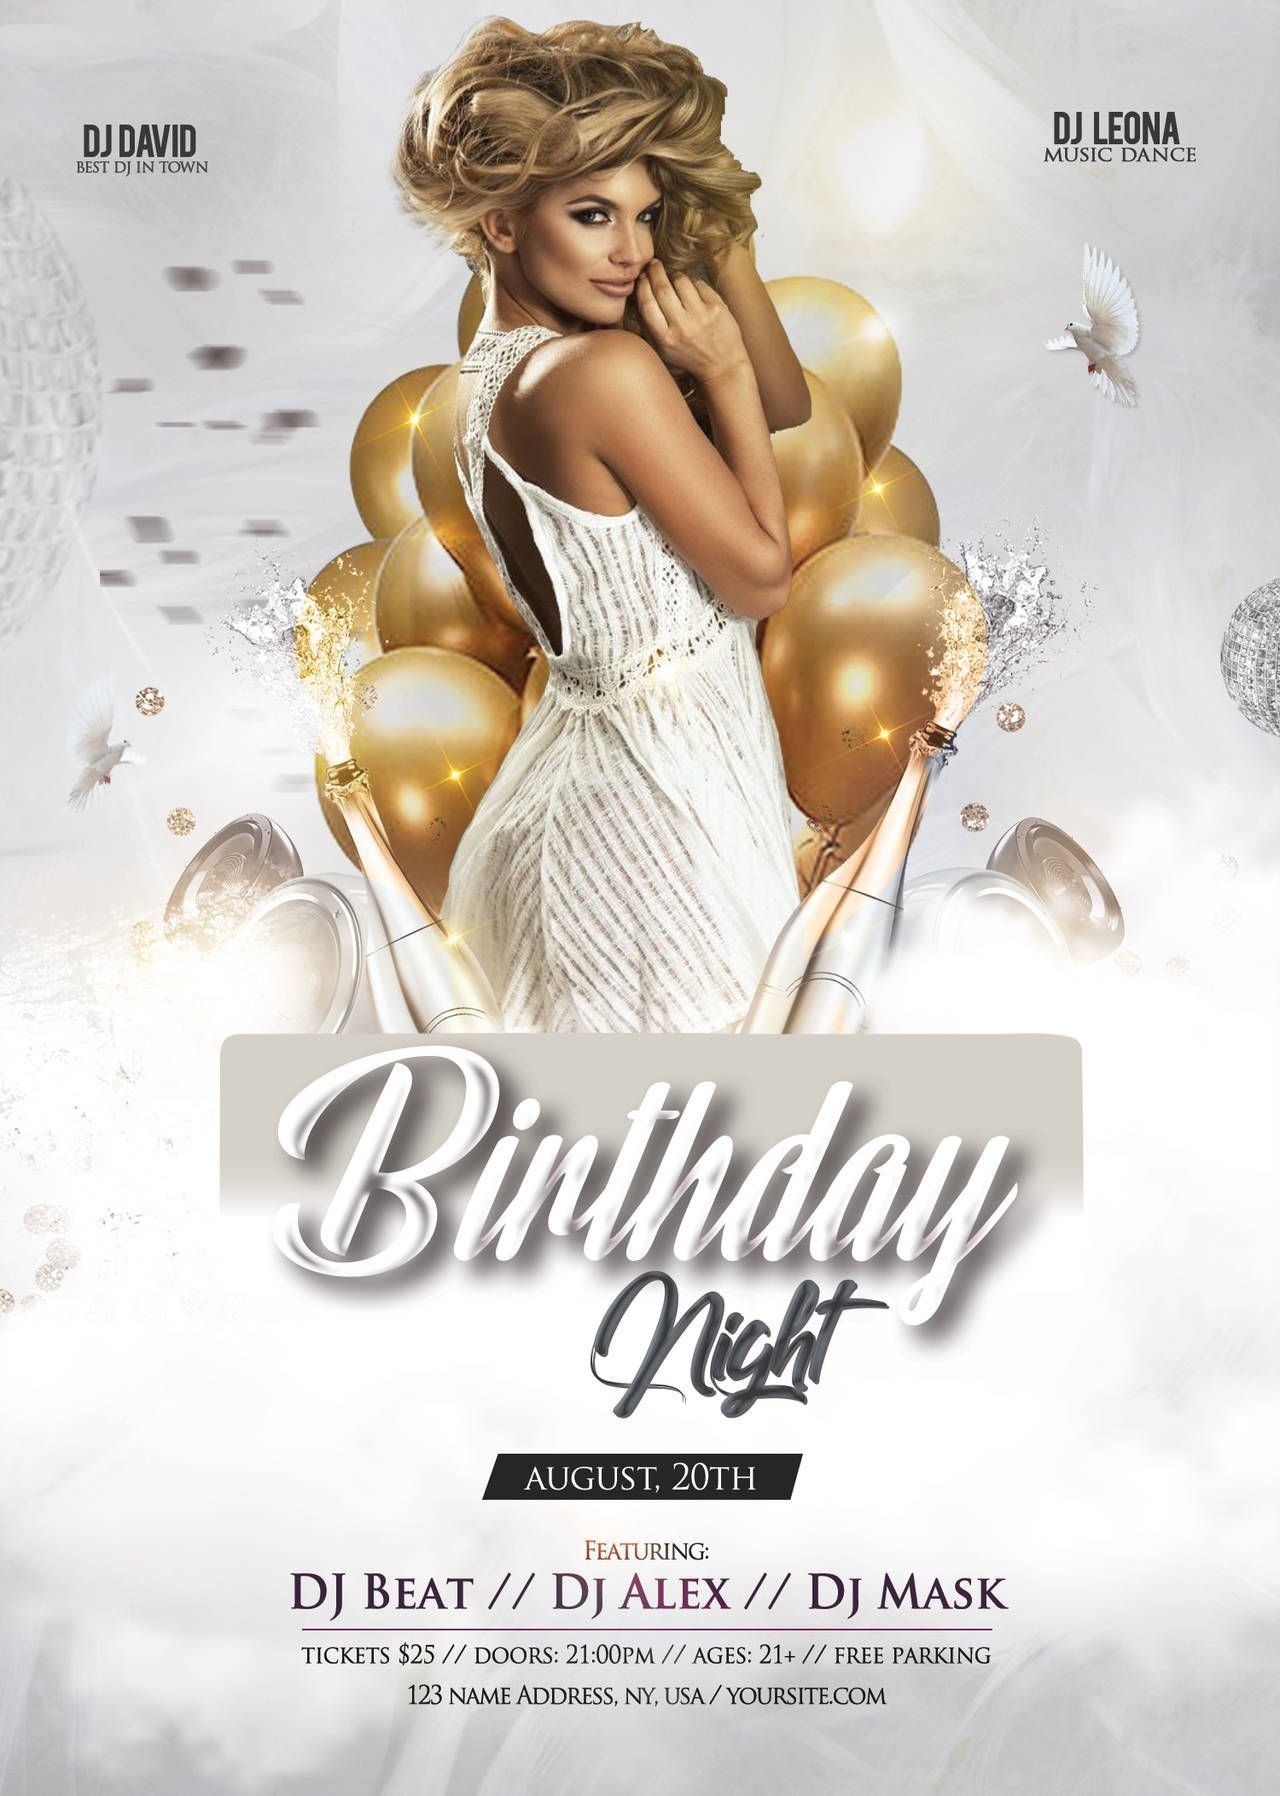 003 Awesome Free Birthday Flyer Template Psd Example  Foam Party - Neon Glow Download PoolFull